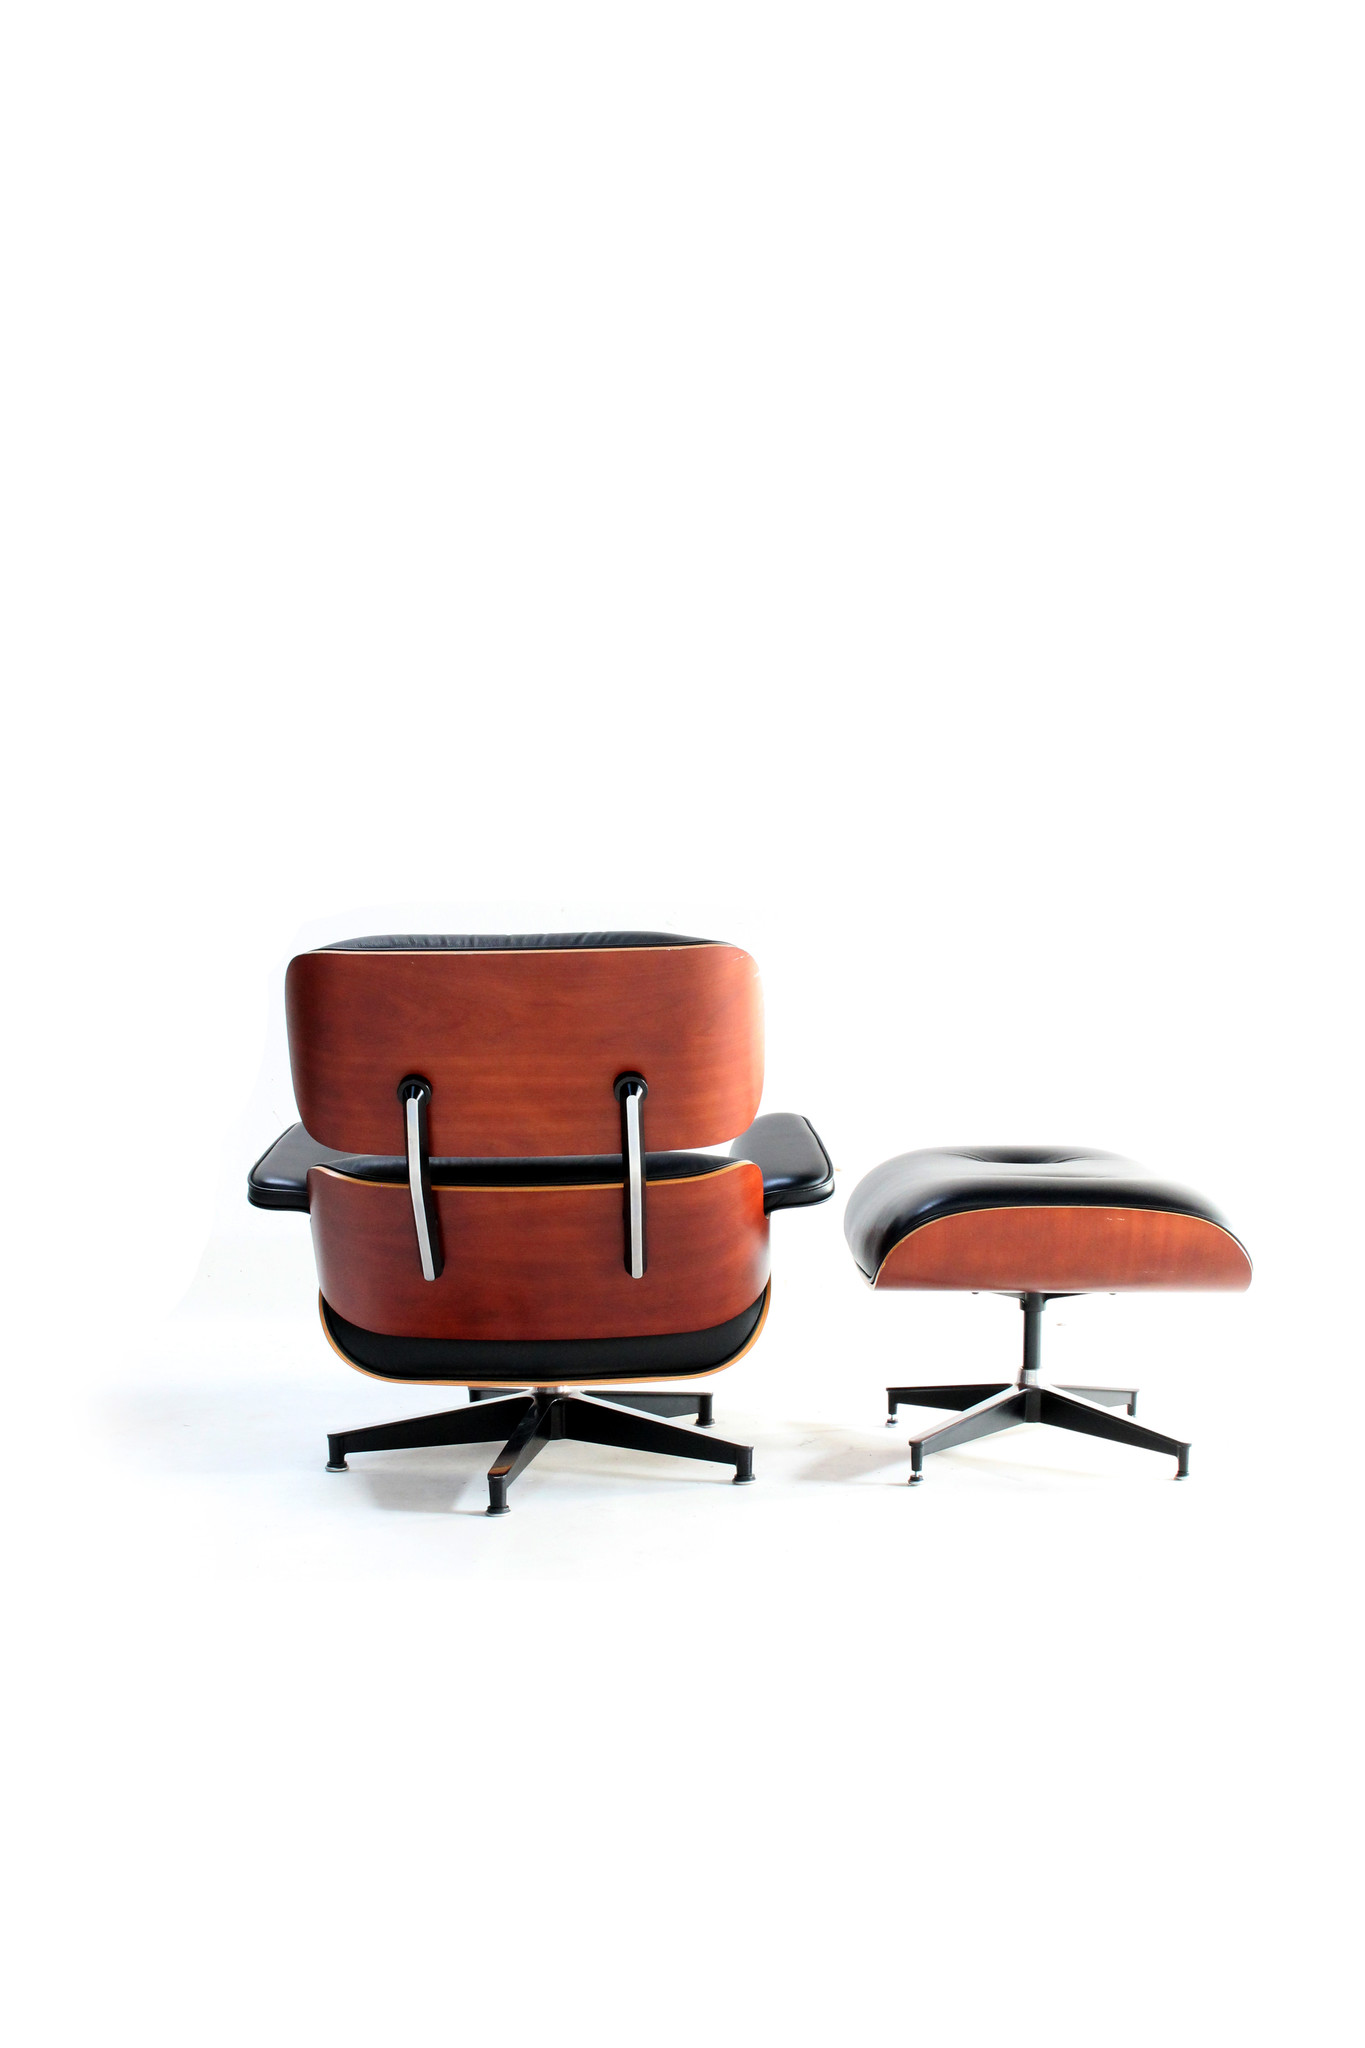 Charles Eames Lounge Chair voor herman Miller